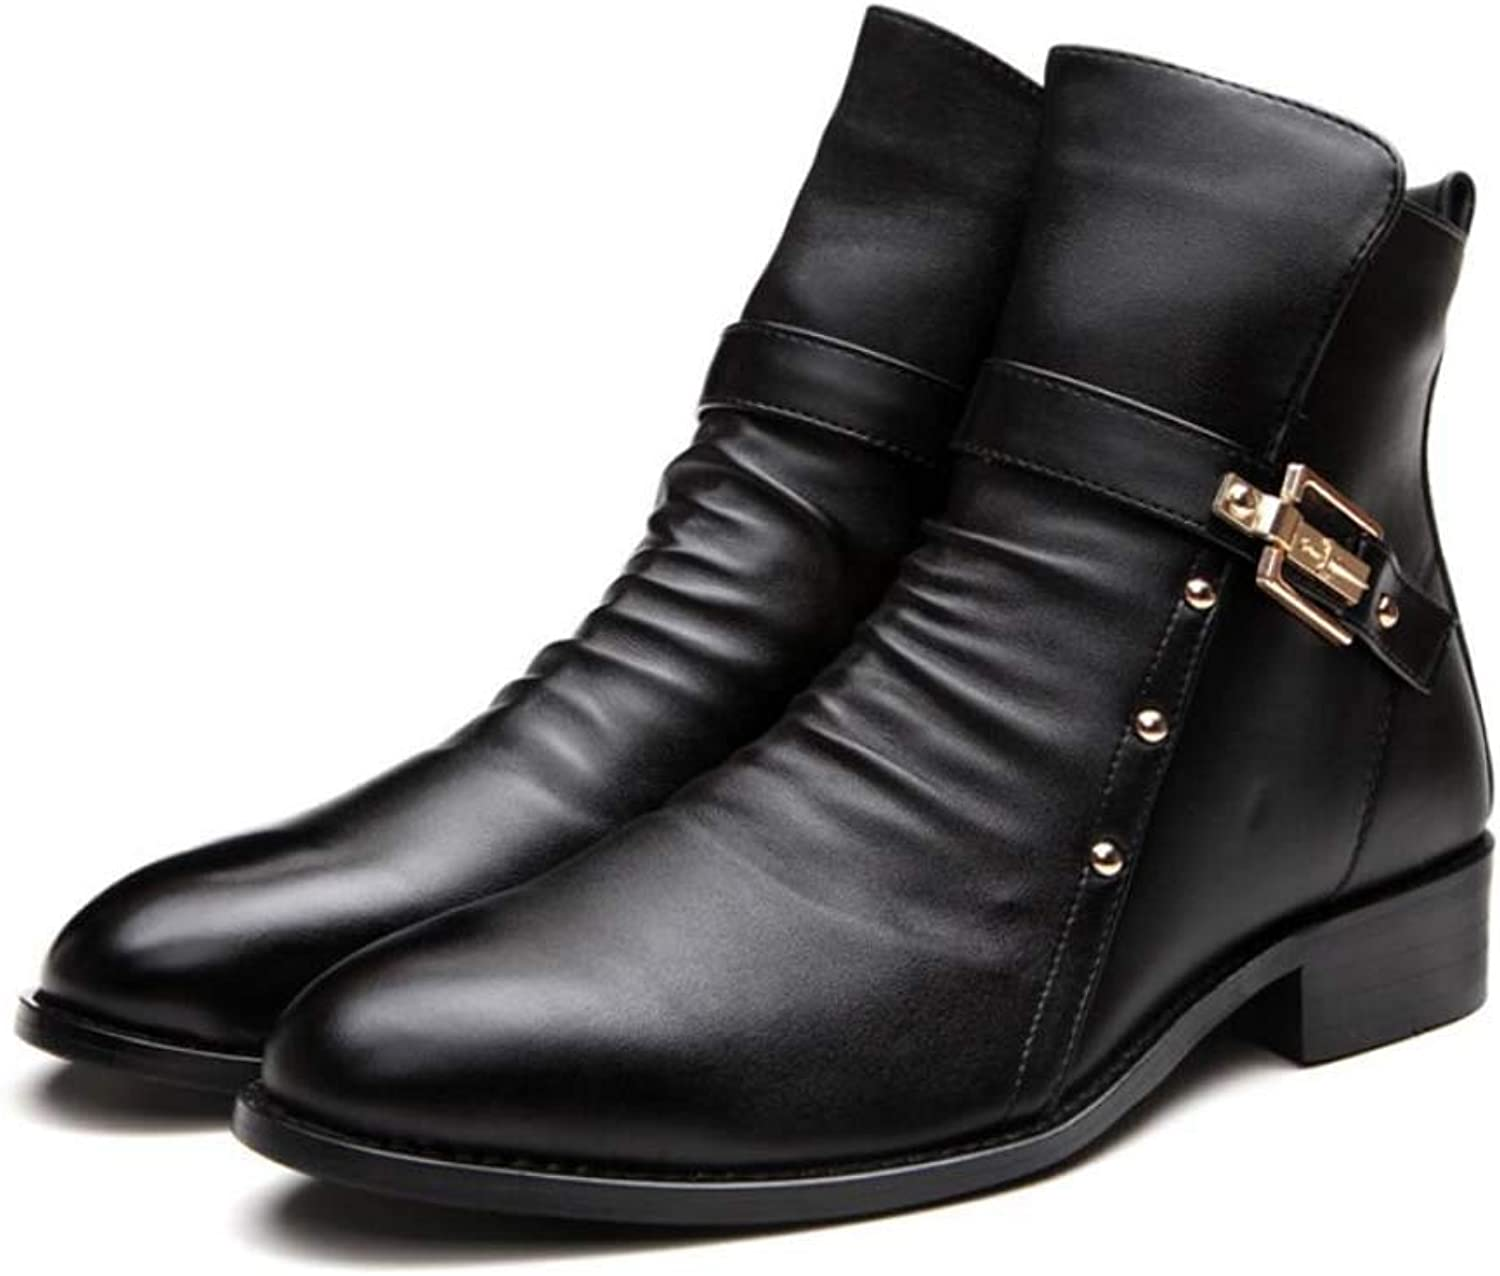 Retro Martin Boots Men Pointed Toe Belt Buckle Dress shoes Casual Motorcycle Boots Knight Boots EU Size 37-46